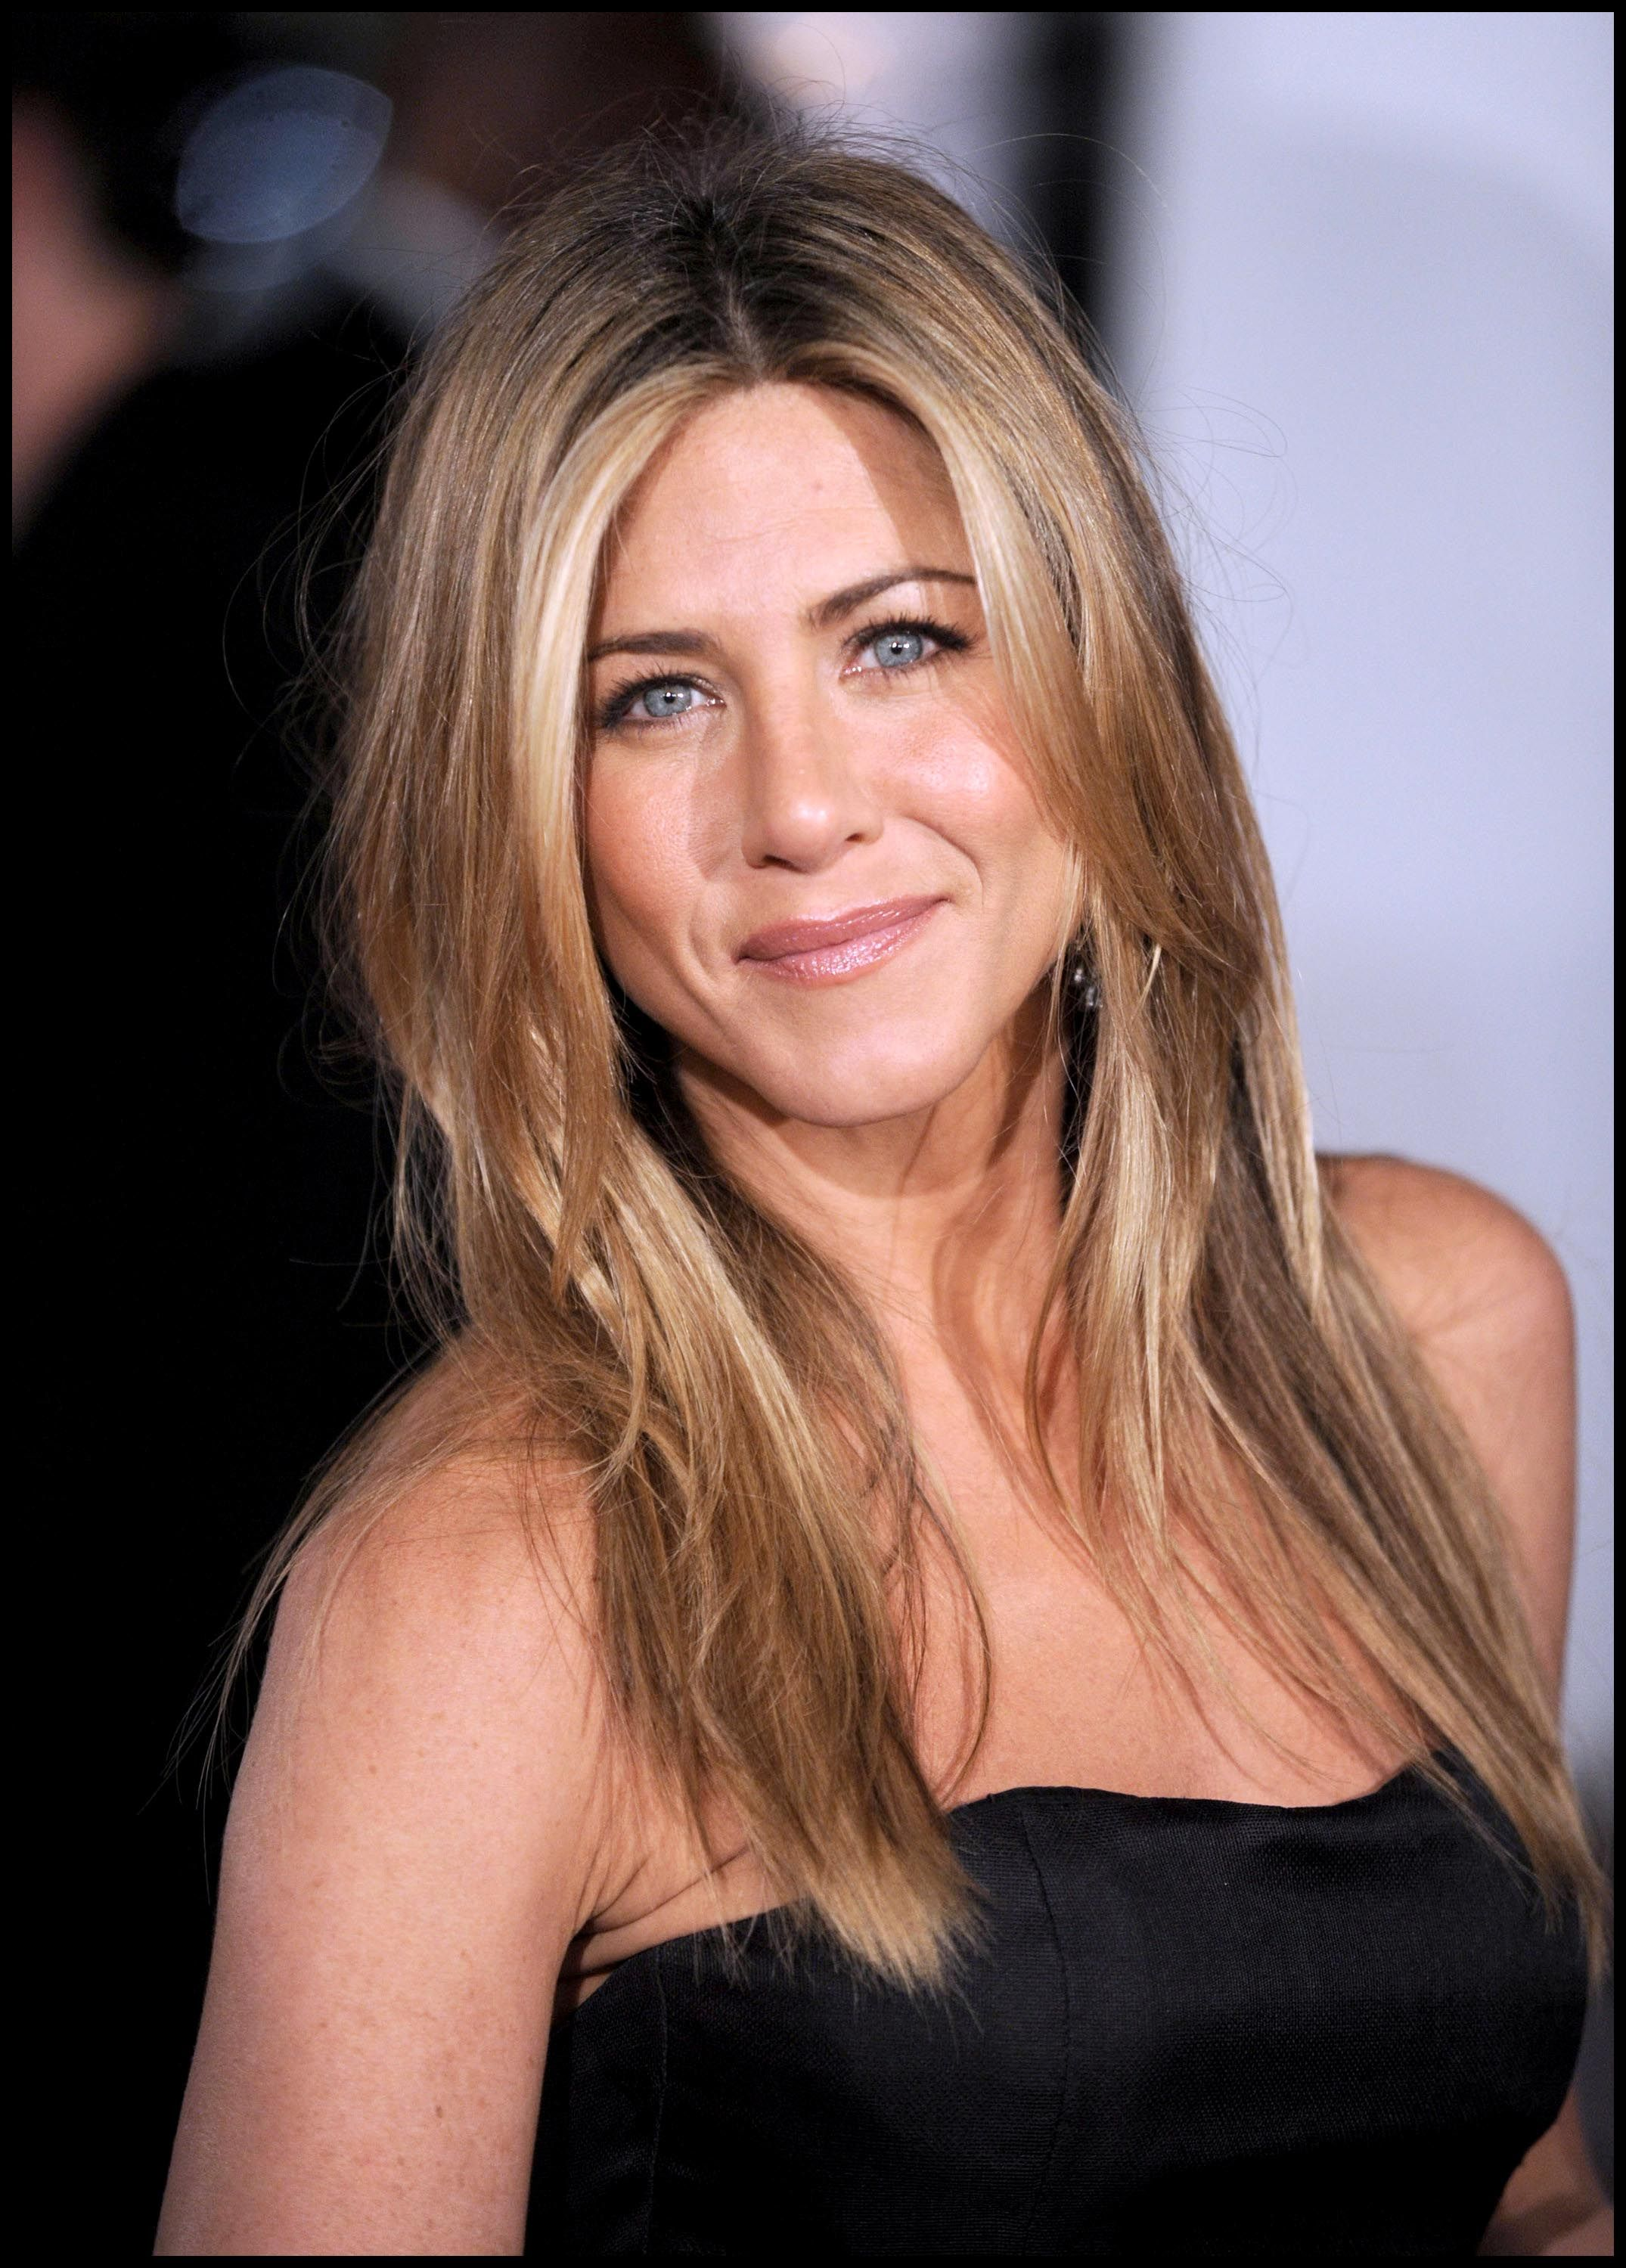 A First Look at Jennifer Aniston's (Super-Sparkly) WeddingRing forecasting